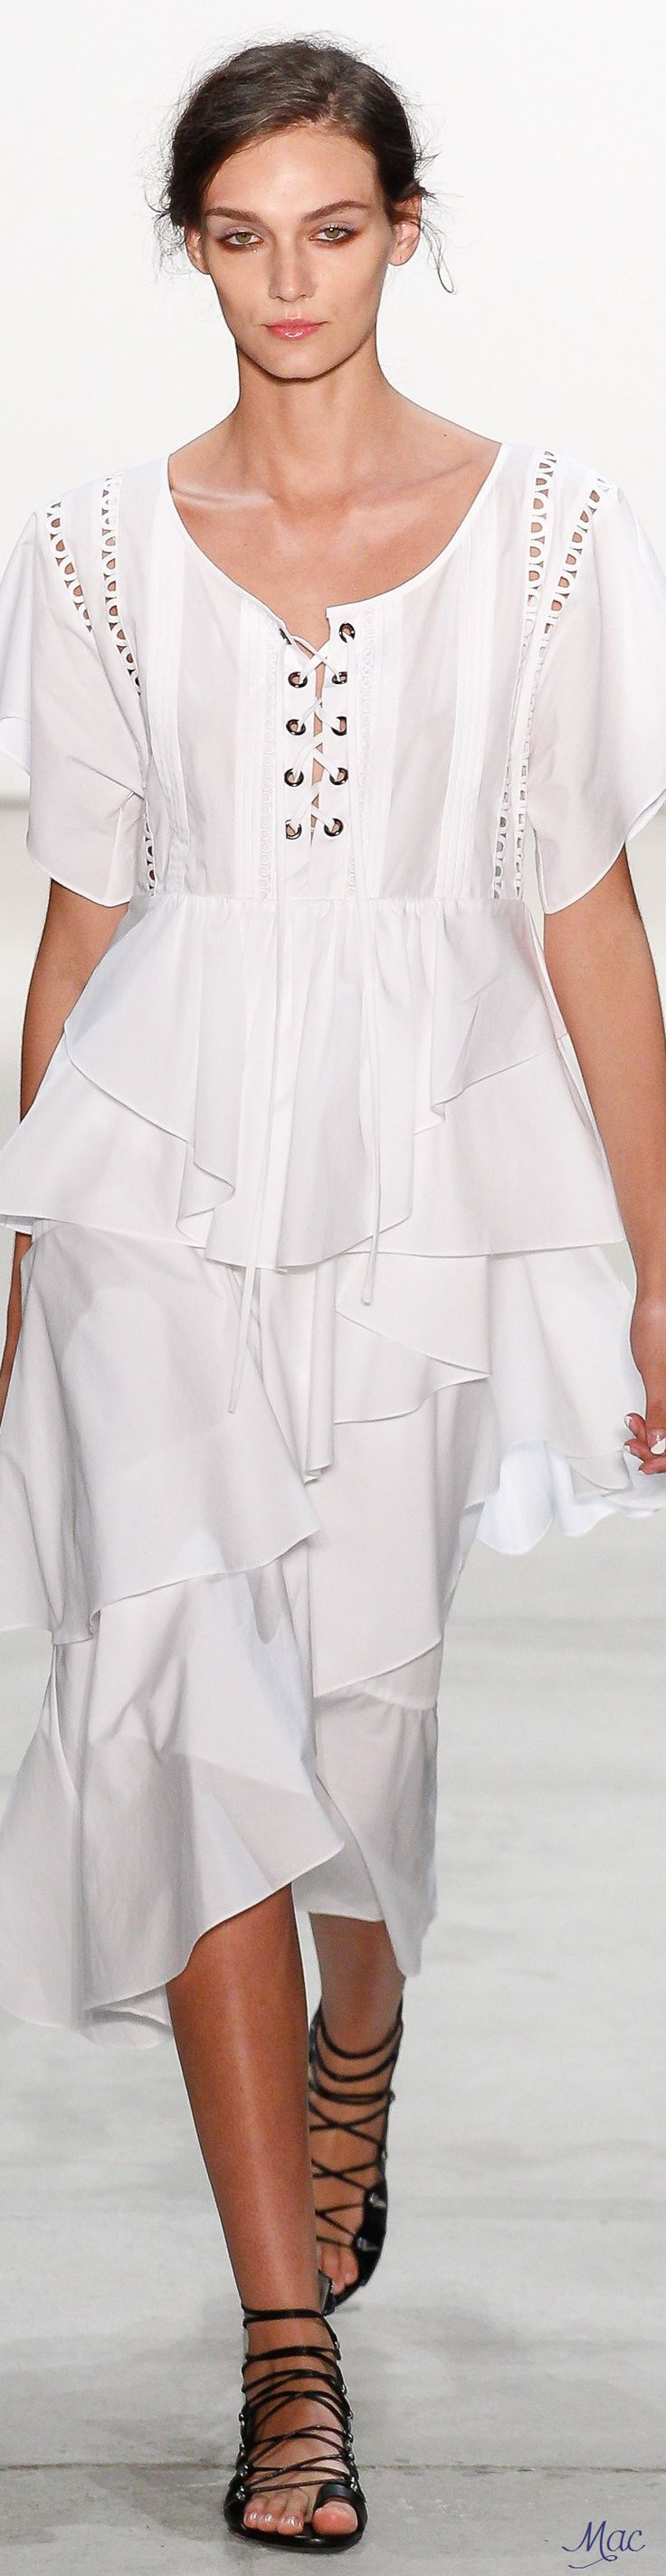 New York Fashion Week / / Fast Forward, Please!  See by Chloe 2016 Summer Collection